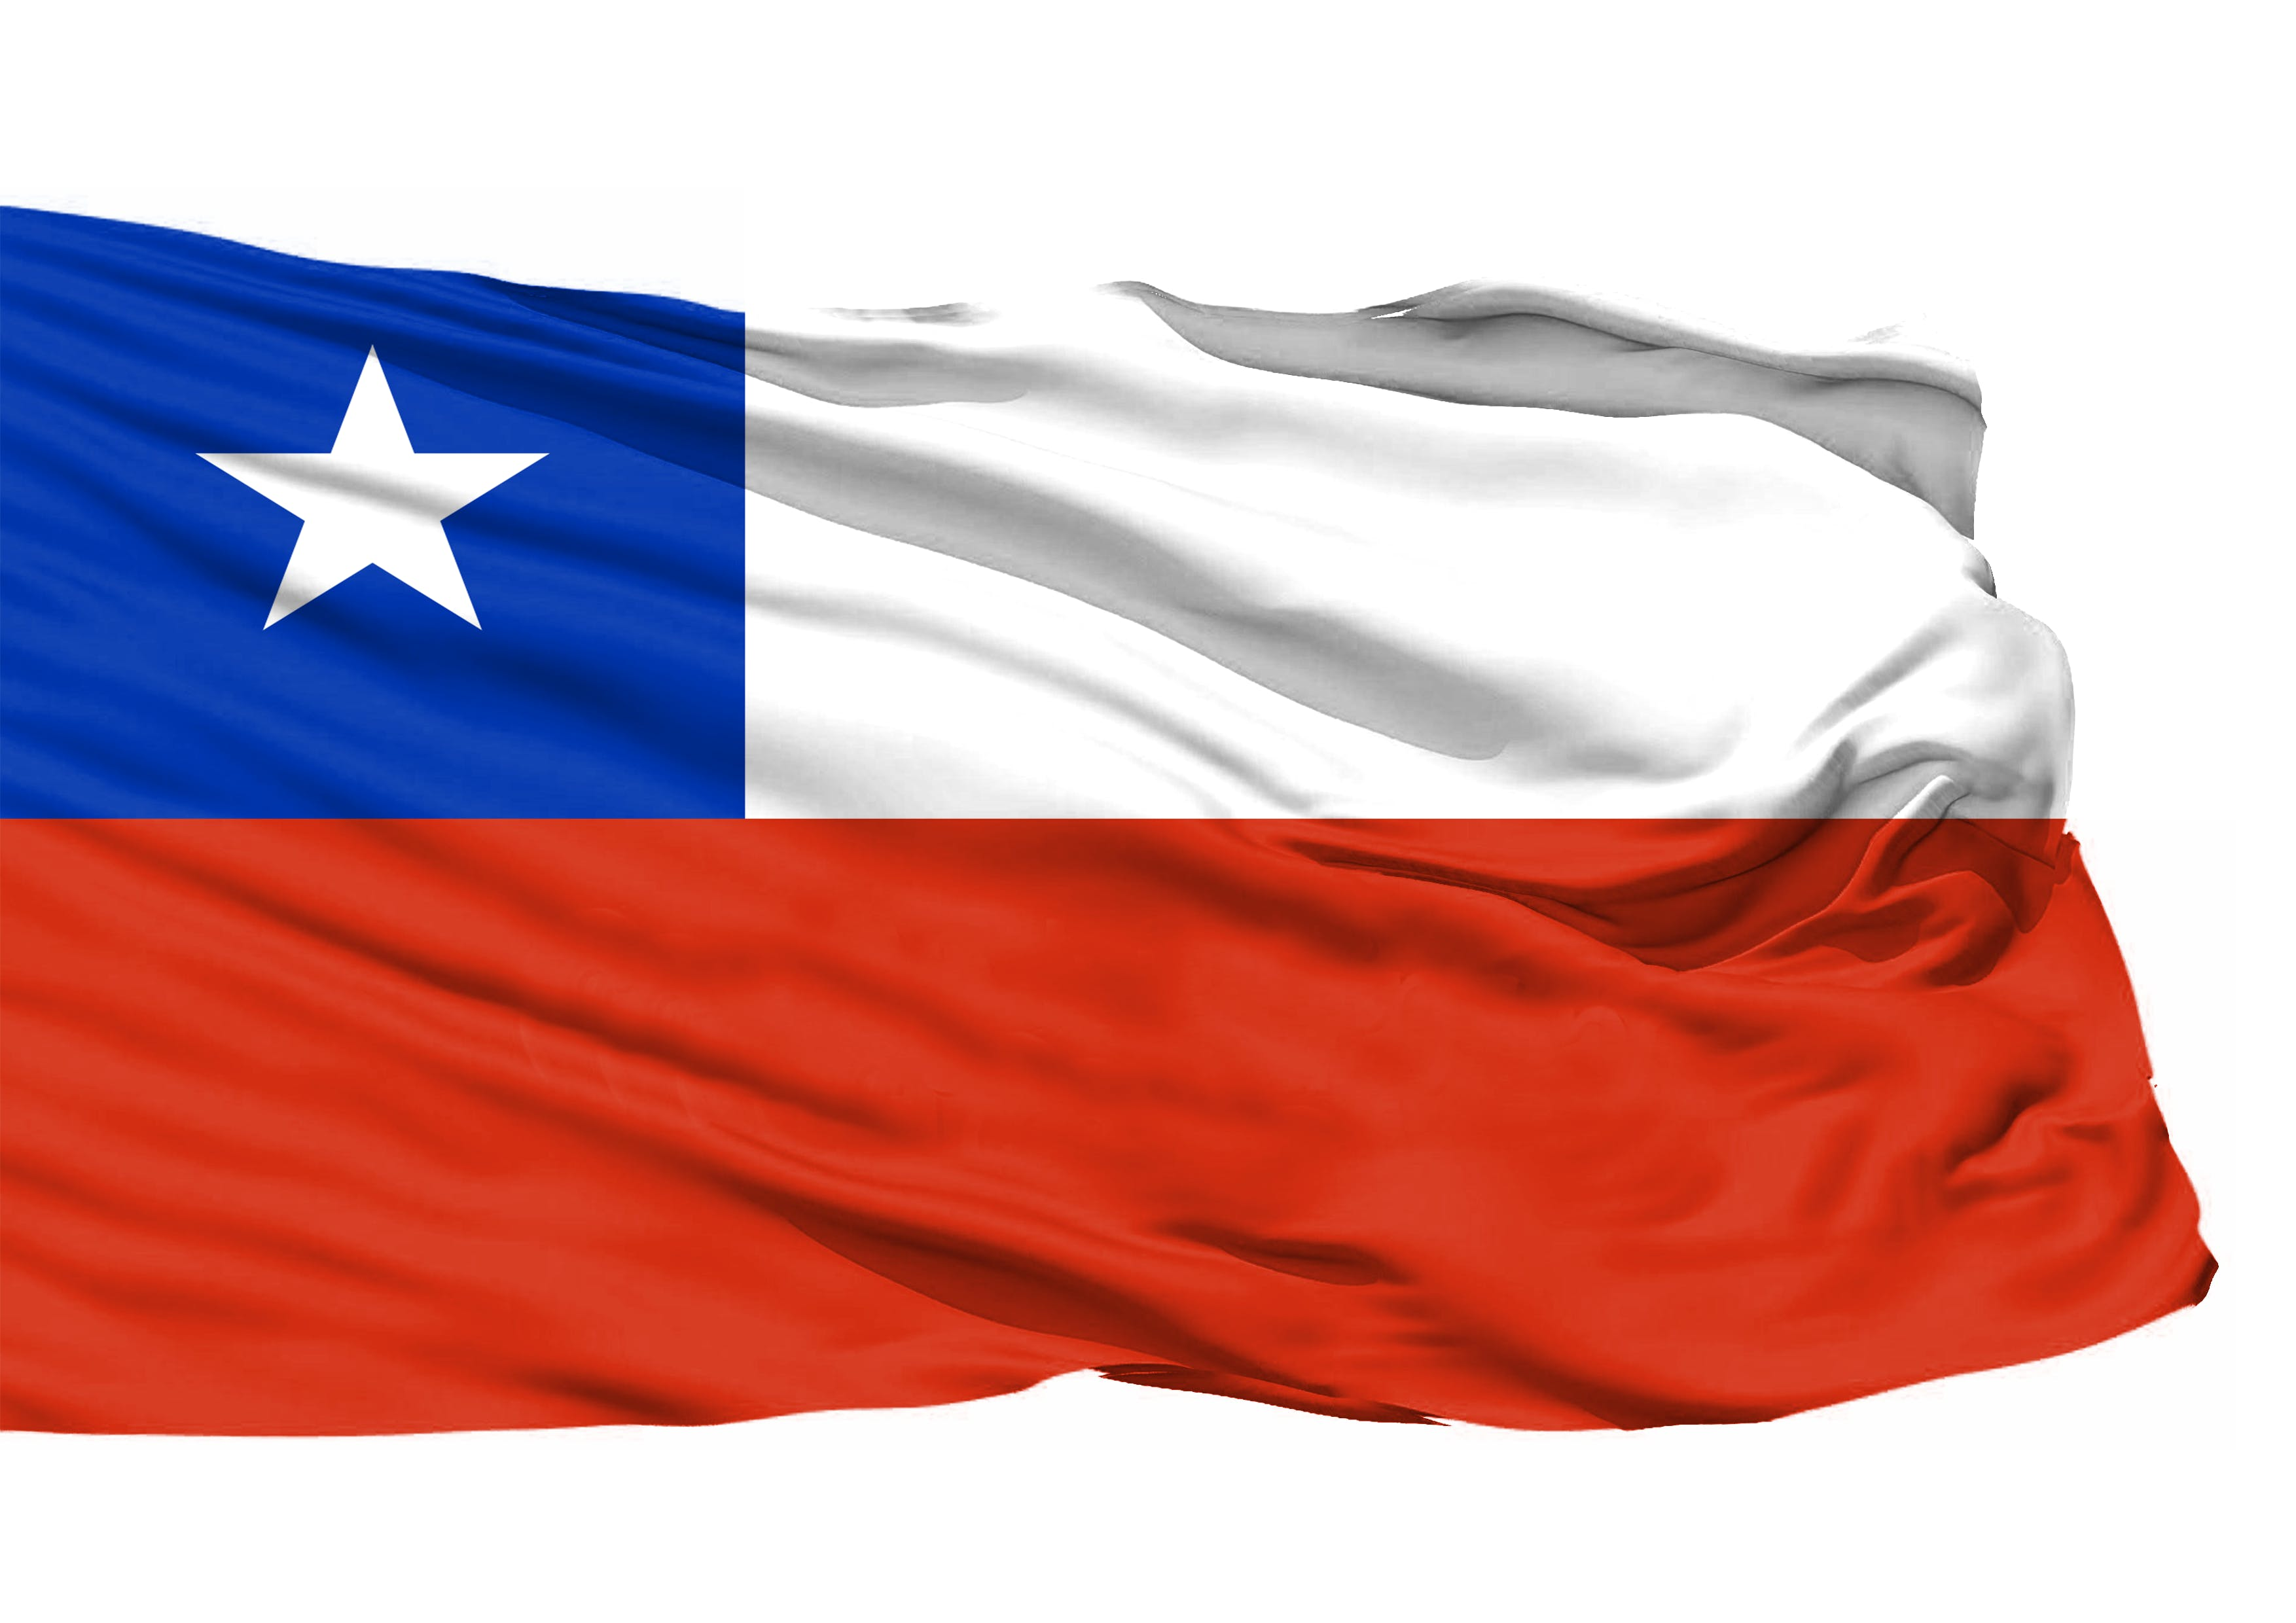 Kostenloses Stock Foto zu chile, nationalflagge, 3d-flagge, flagge chile 3d